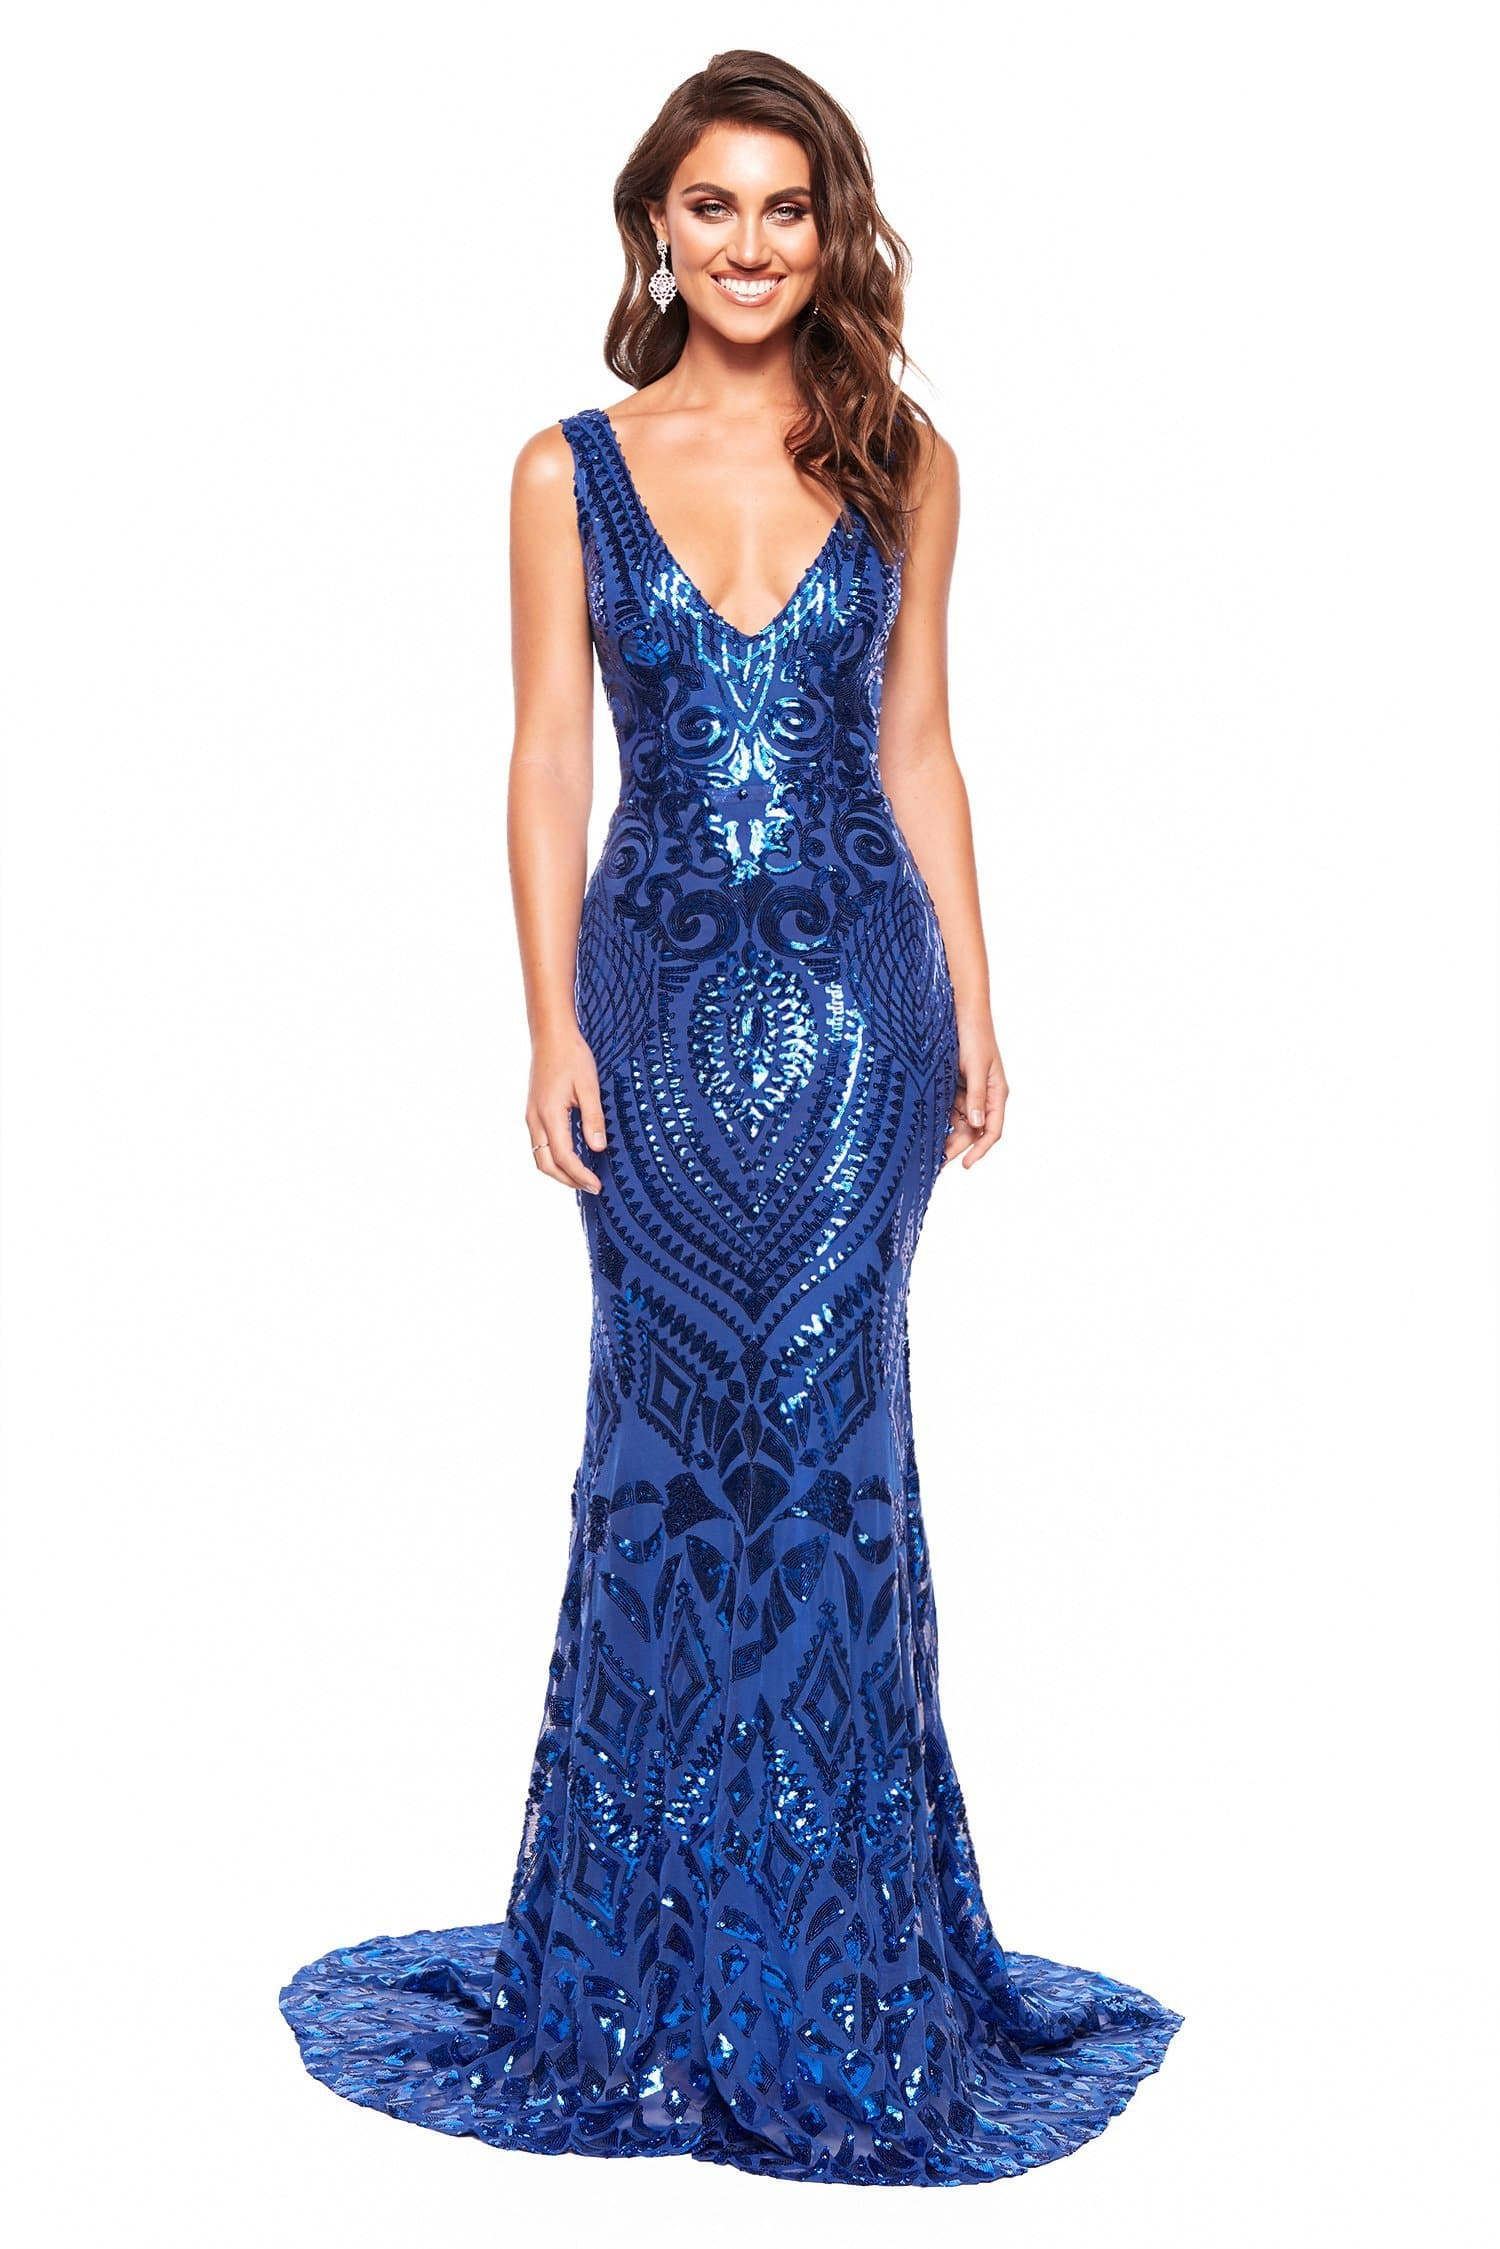 448e318712b A N Luxe Crown - Royal Blue Sequin Gown with Plunge Neck   Open Back ...